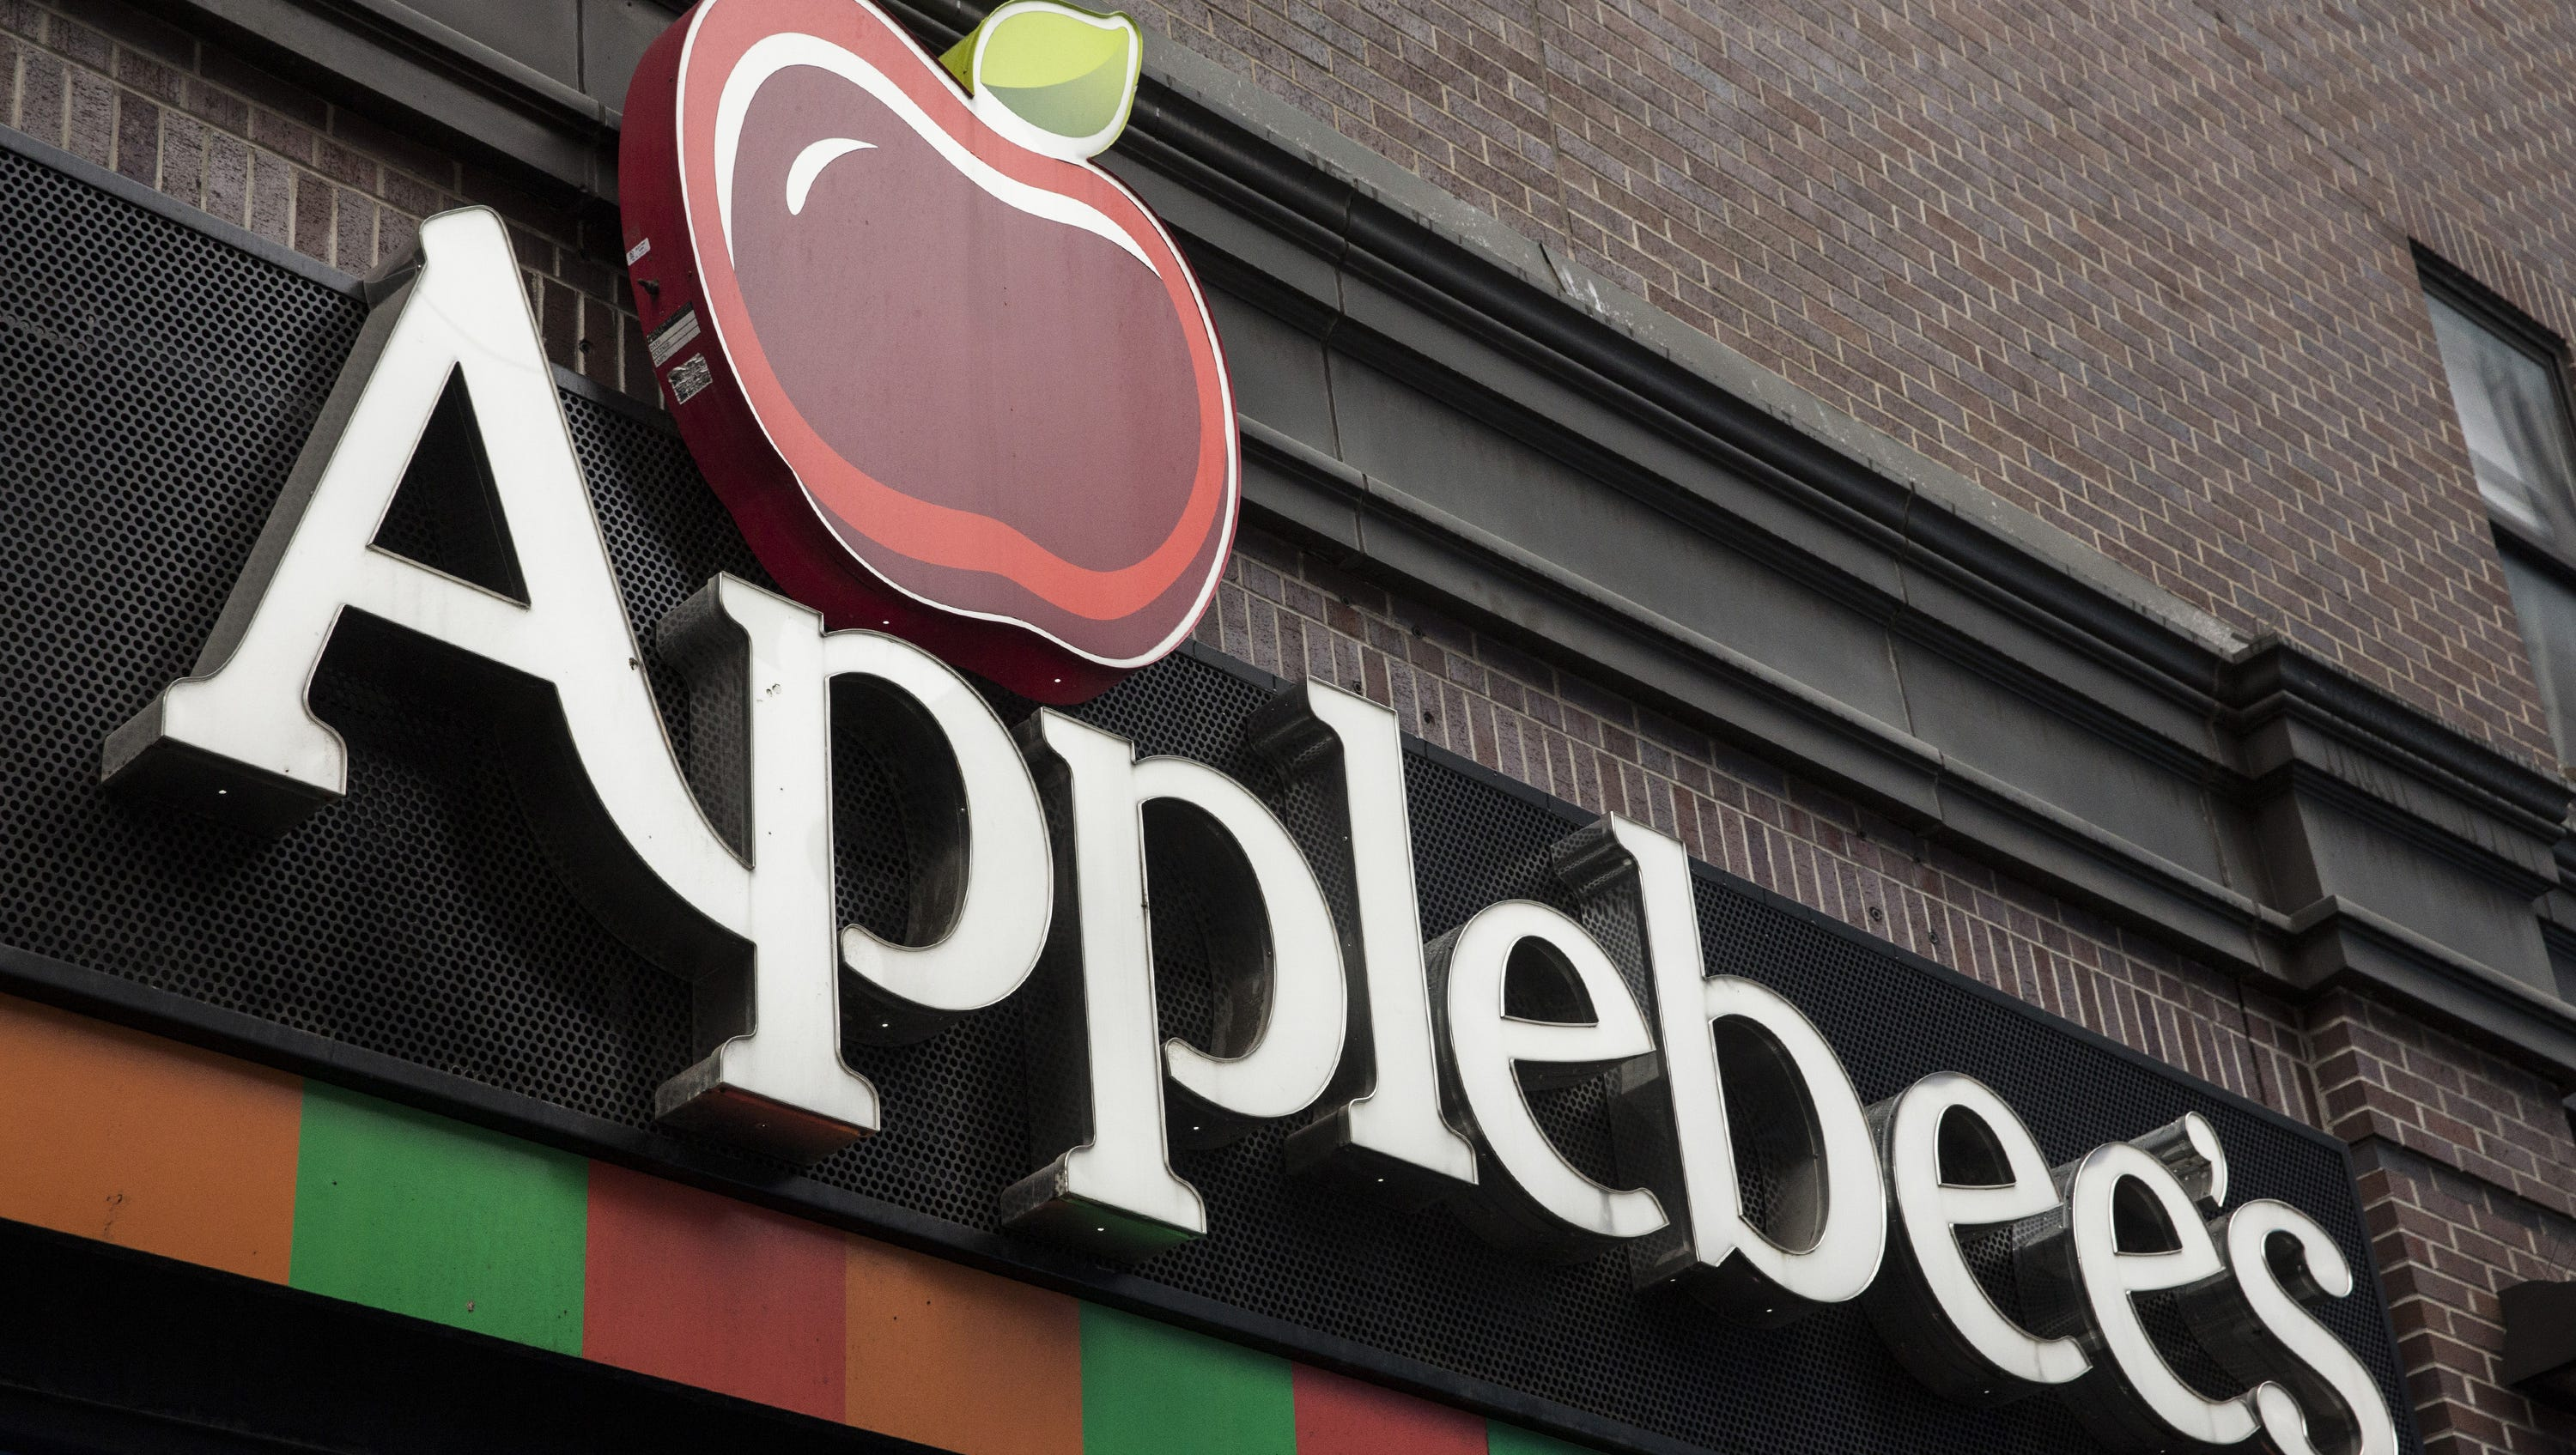 Applebees Closing List 2020.Up To 120 More Applebee S And Ihop Restaurants Will Close